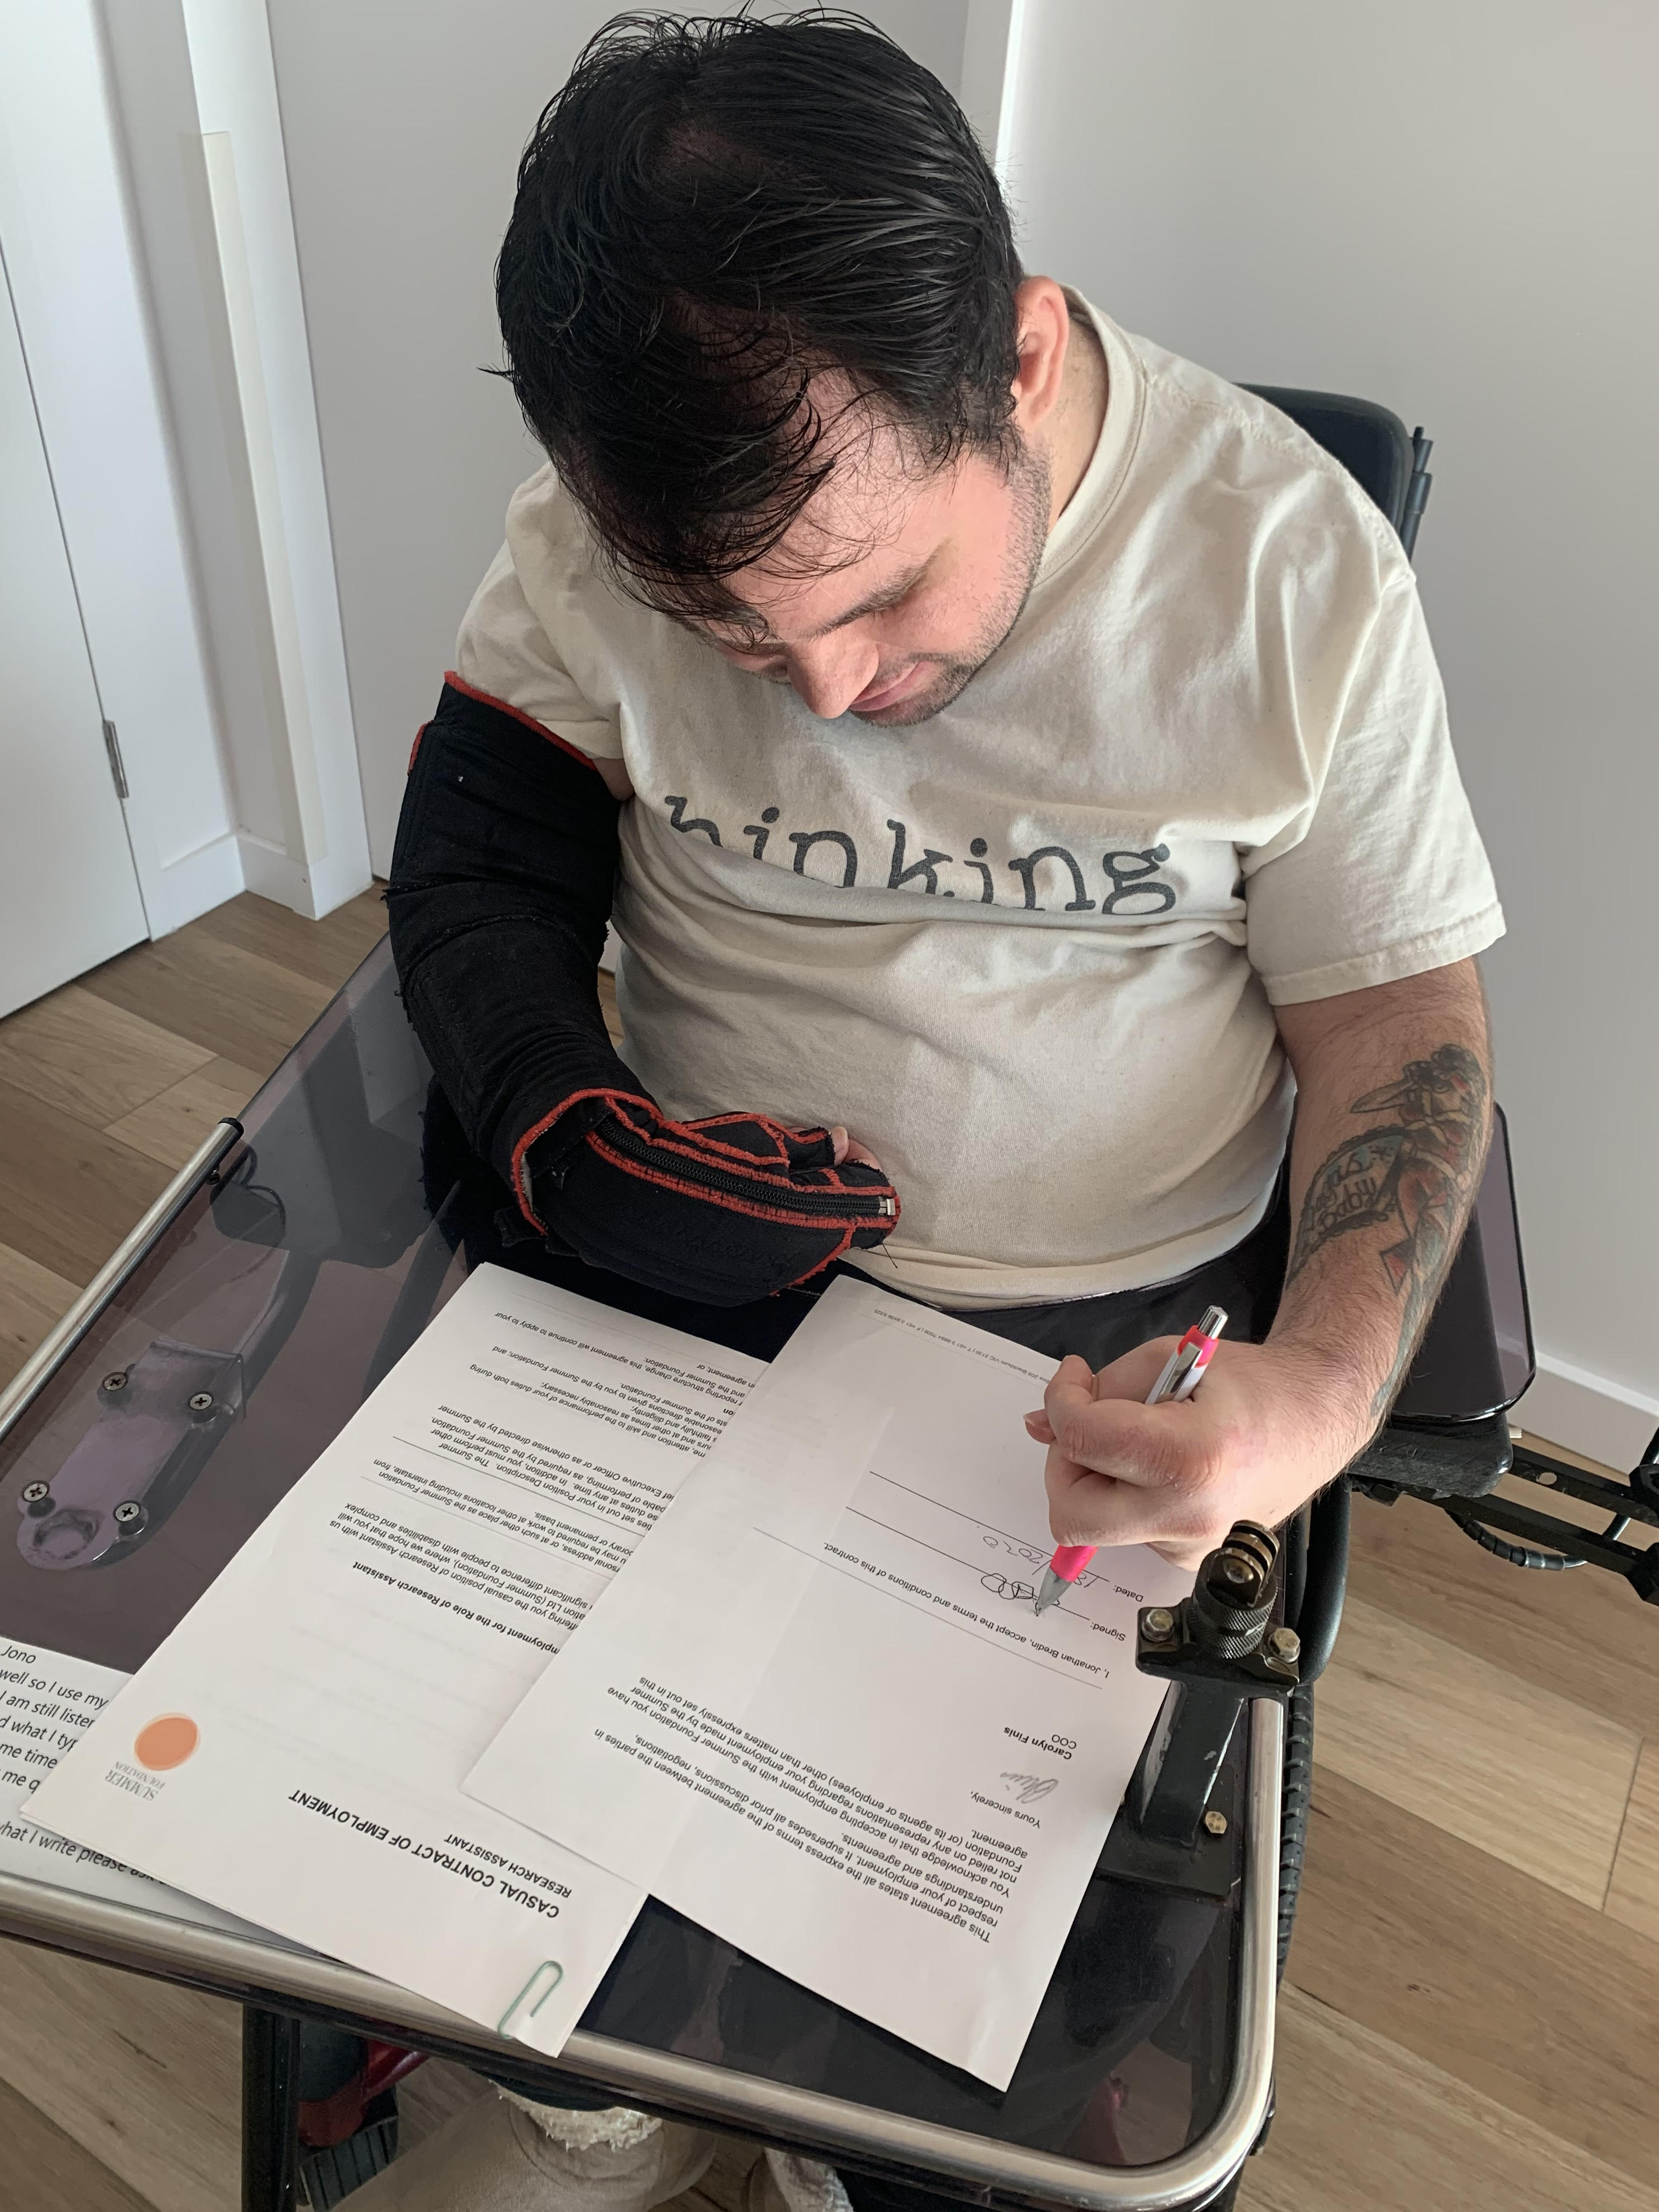 Image description: Jono in his wheelchair signing a contract. He is wearing a white top that says 'thinking'.